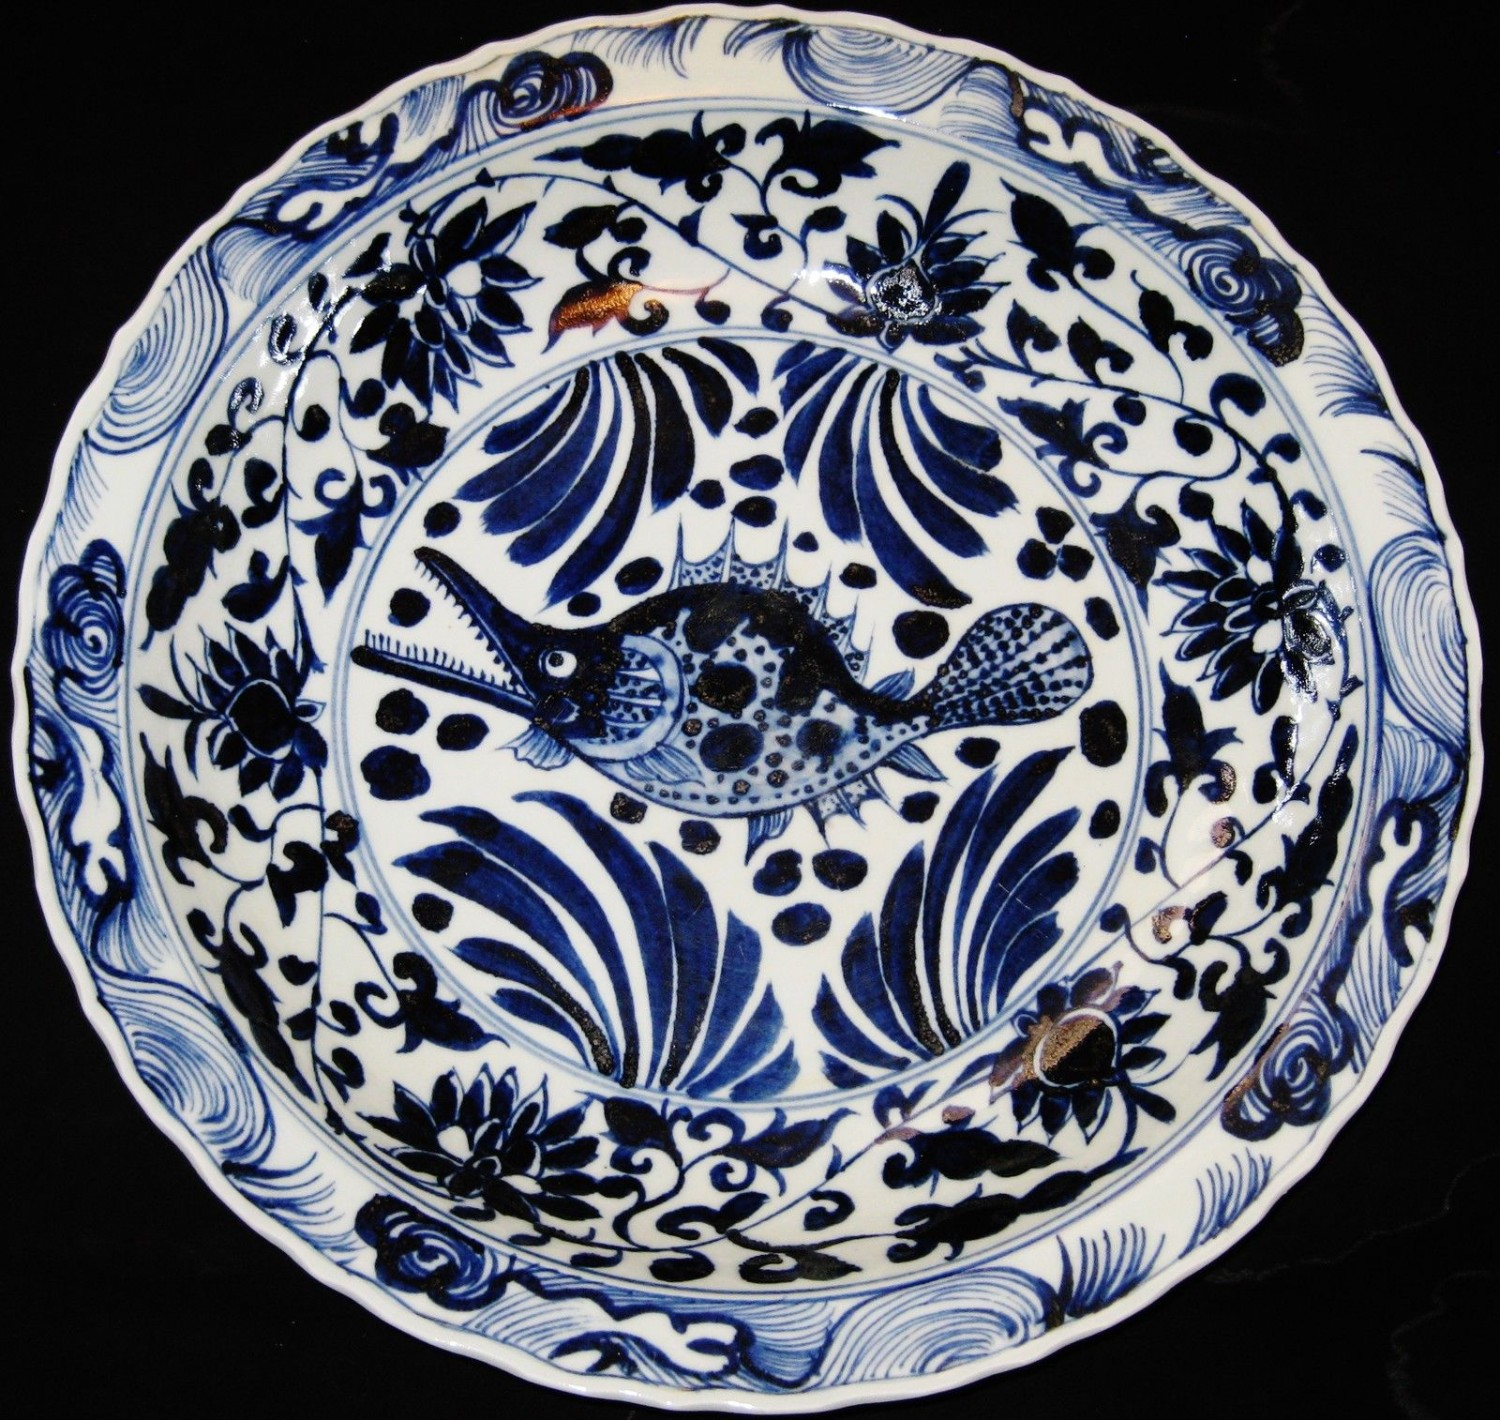 HUGE 44.5CM CHINESE PORCELAIN FISH B&W CHARGER PLATE,19TH C., XUANDE MARK.